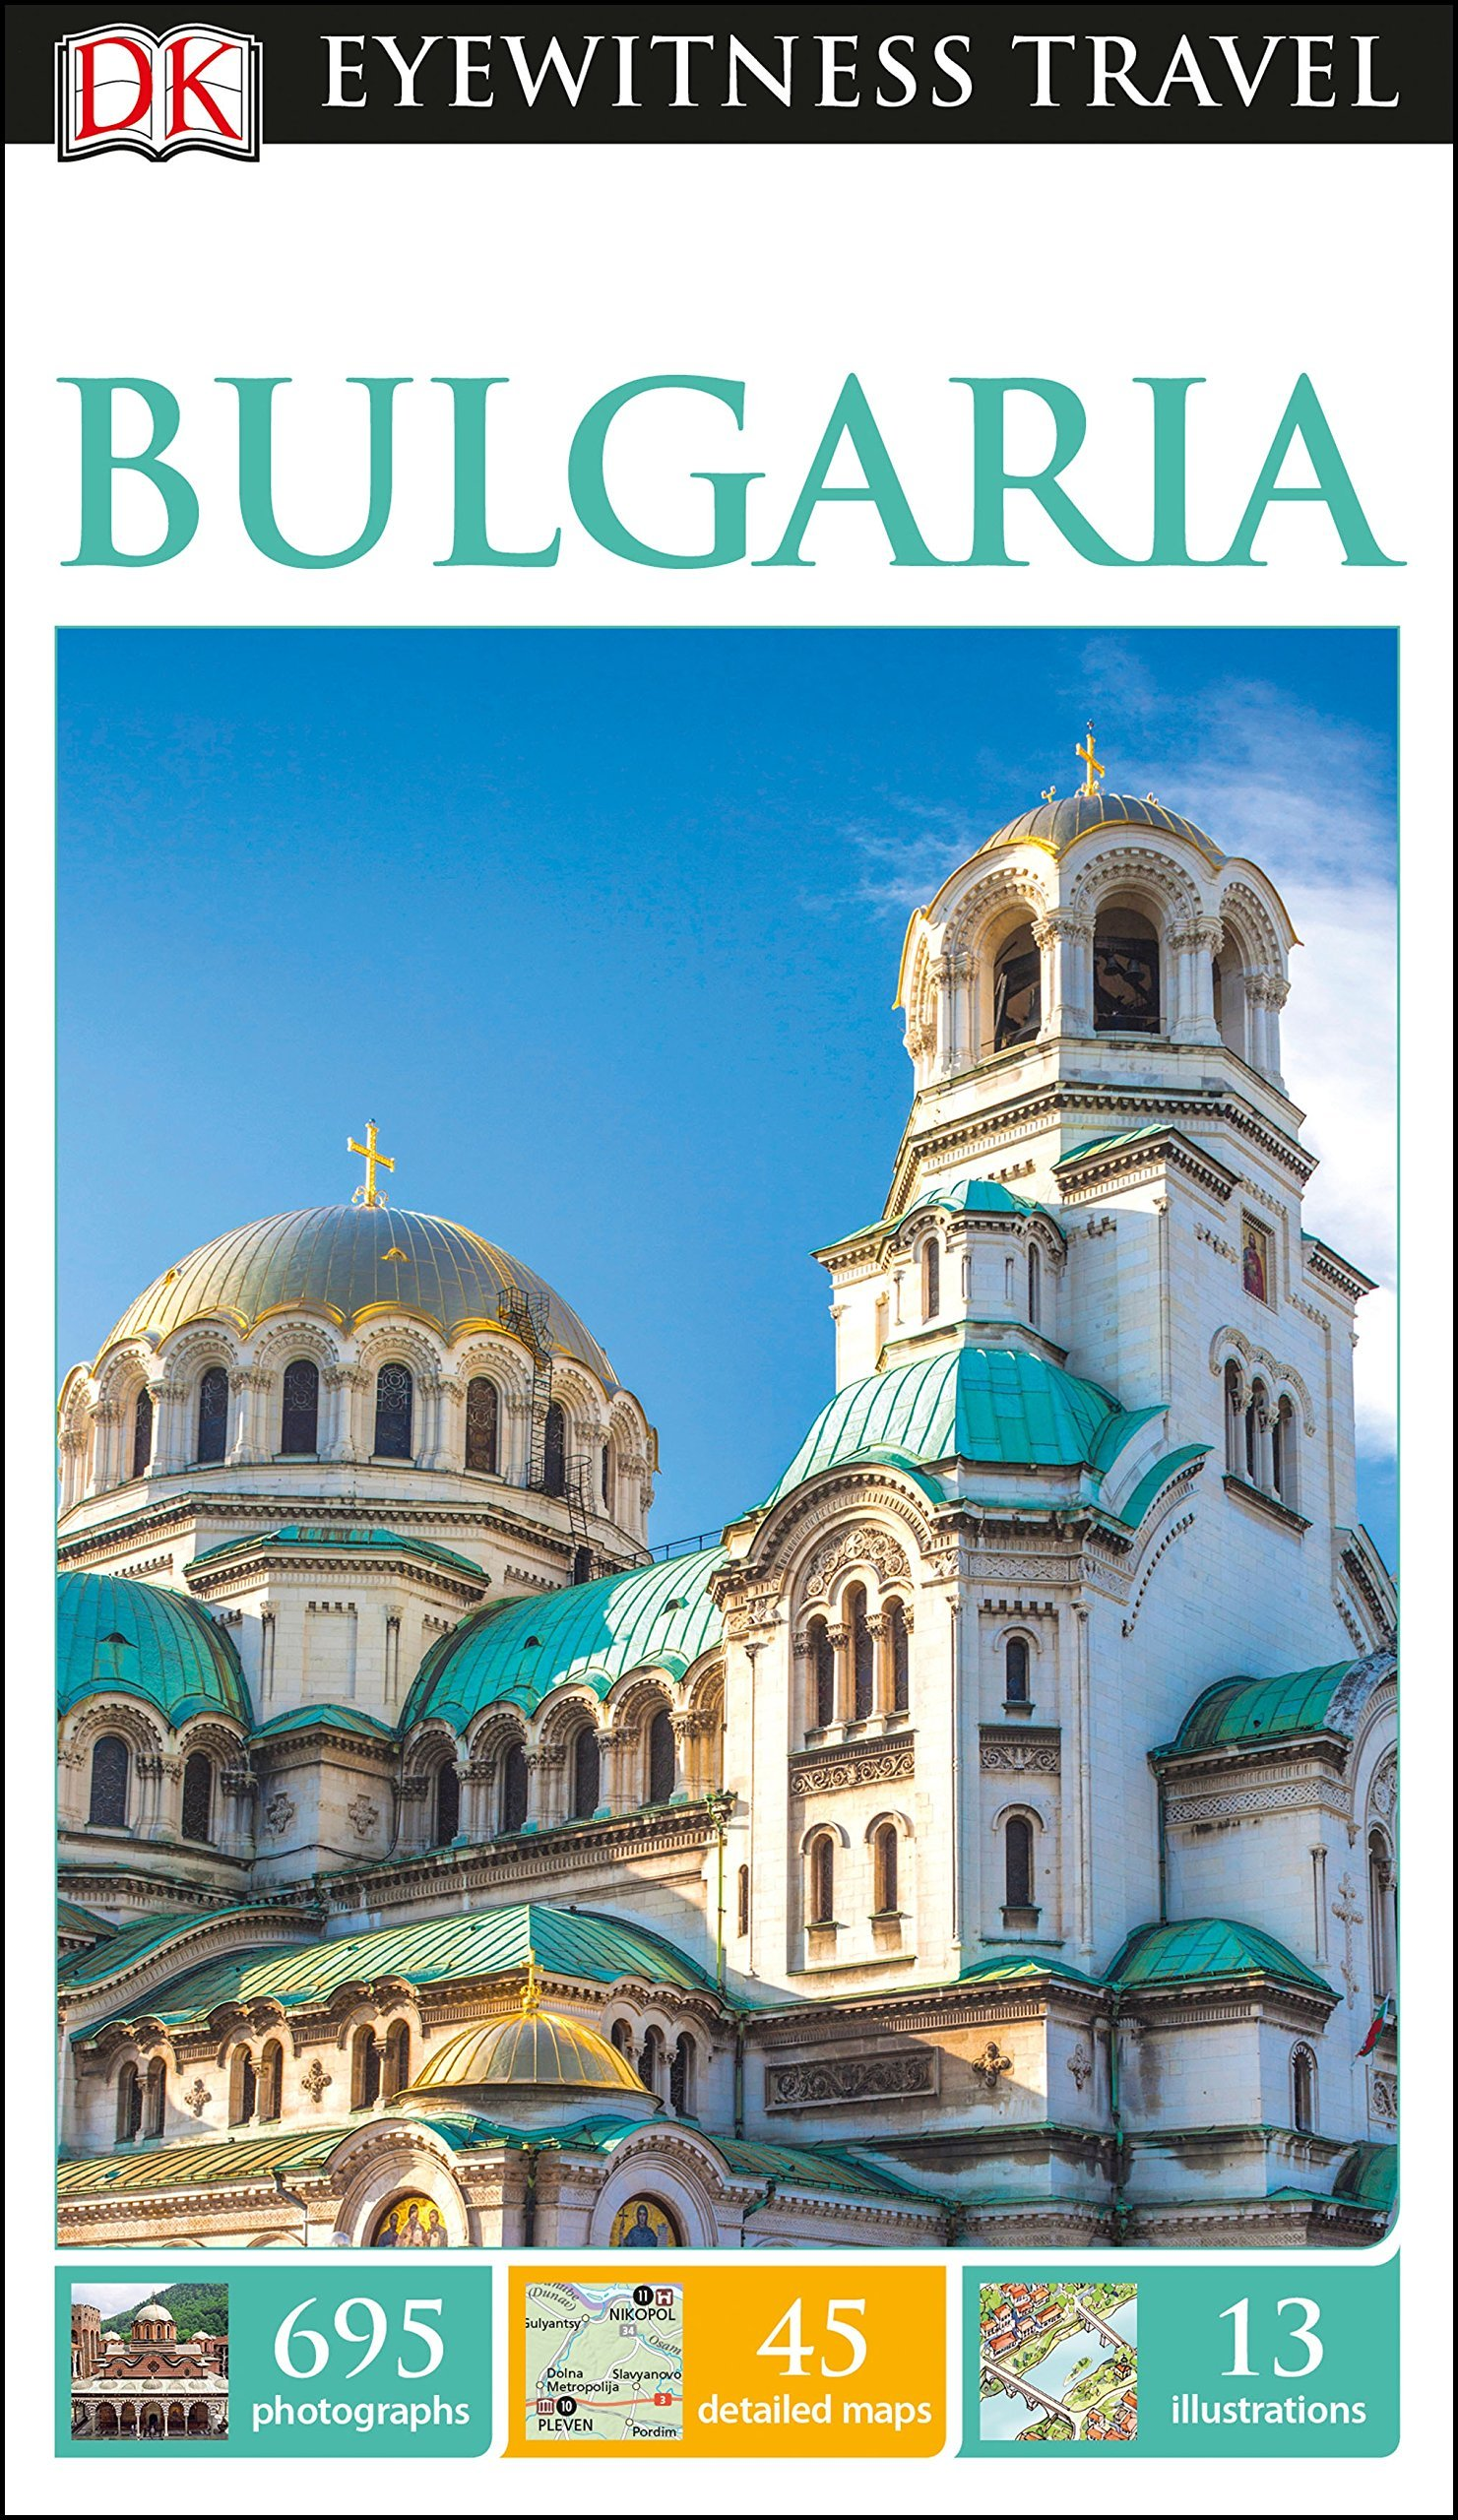 Bulgaria 9780241275429  Dorling Kindersley Eyewitness Guides  Reisgidsen Bulgarije